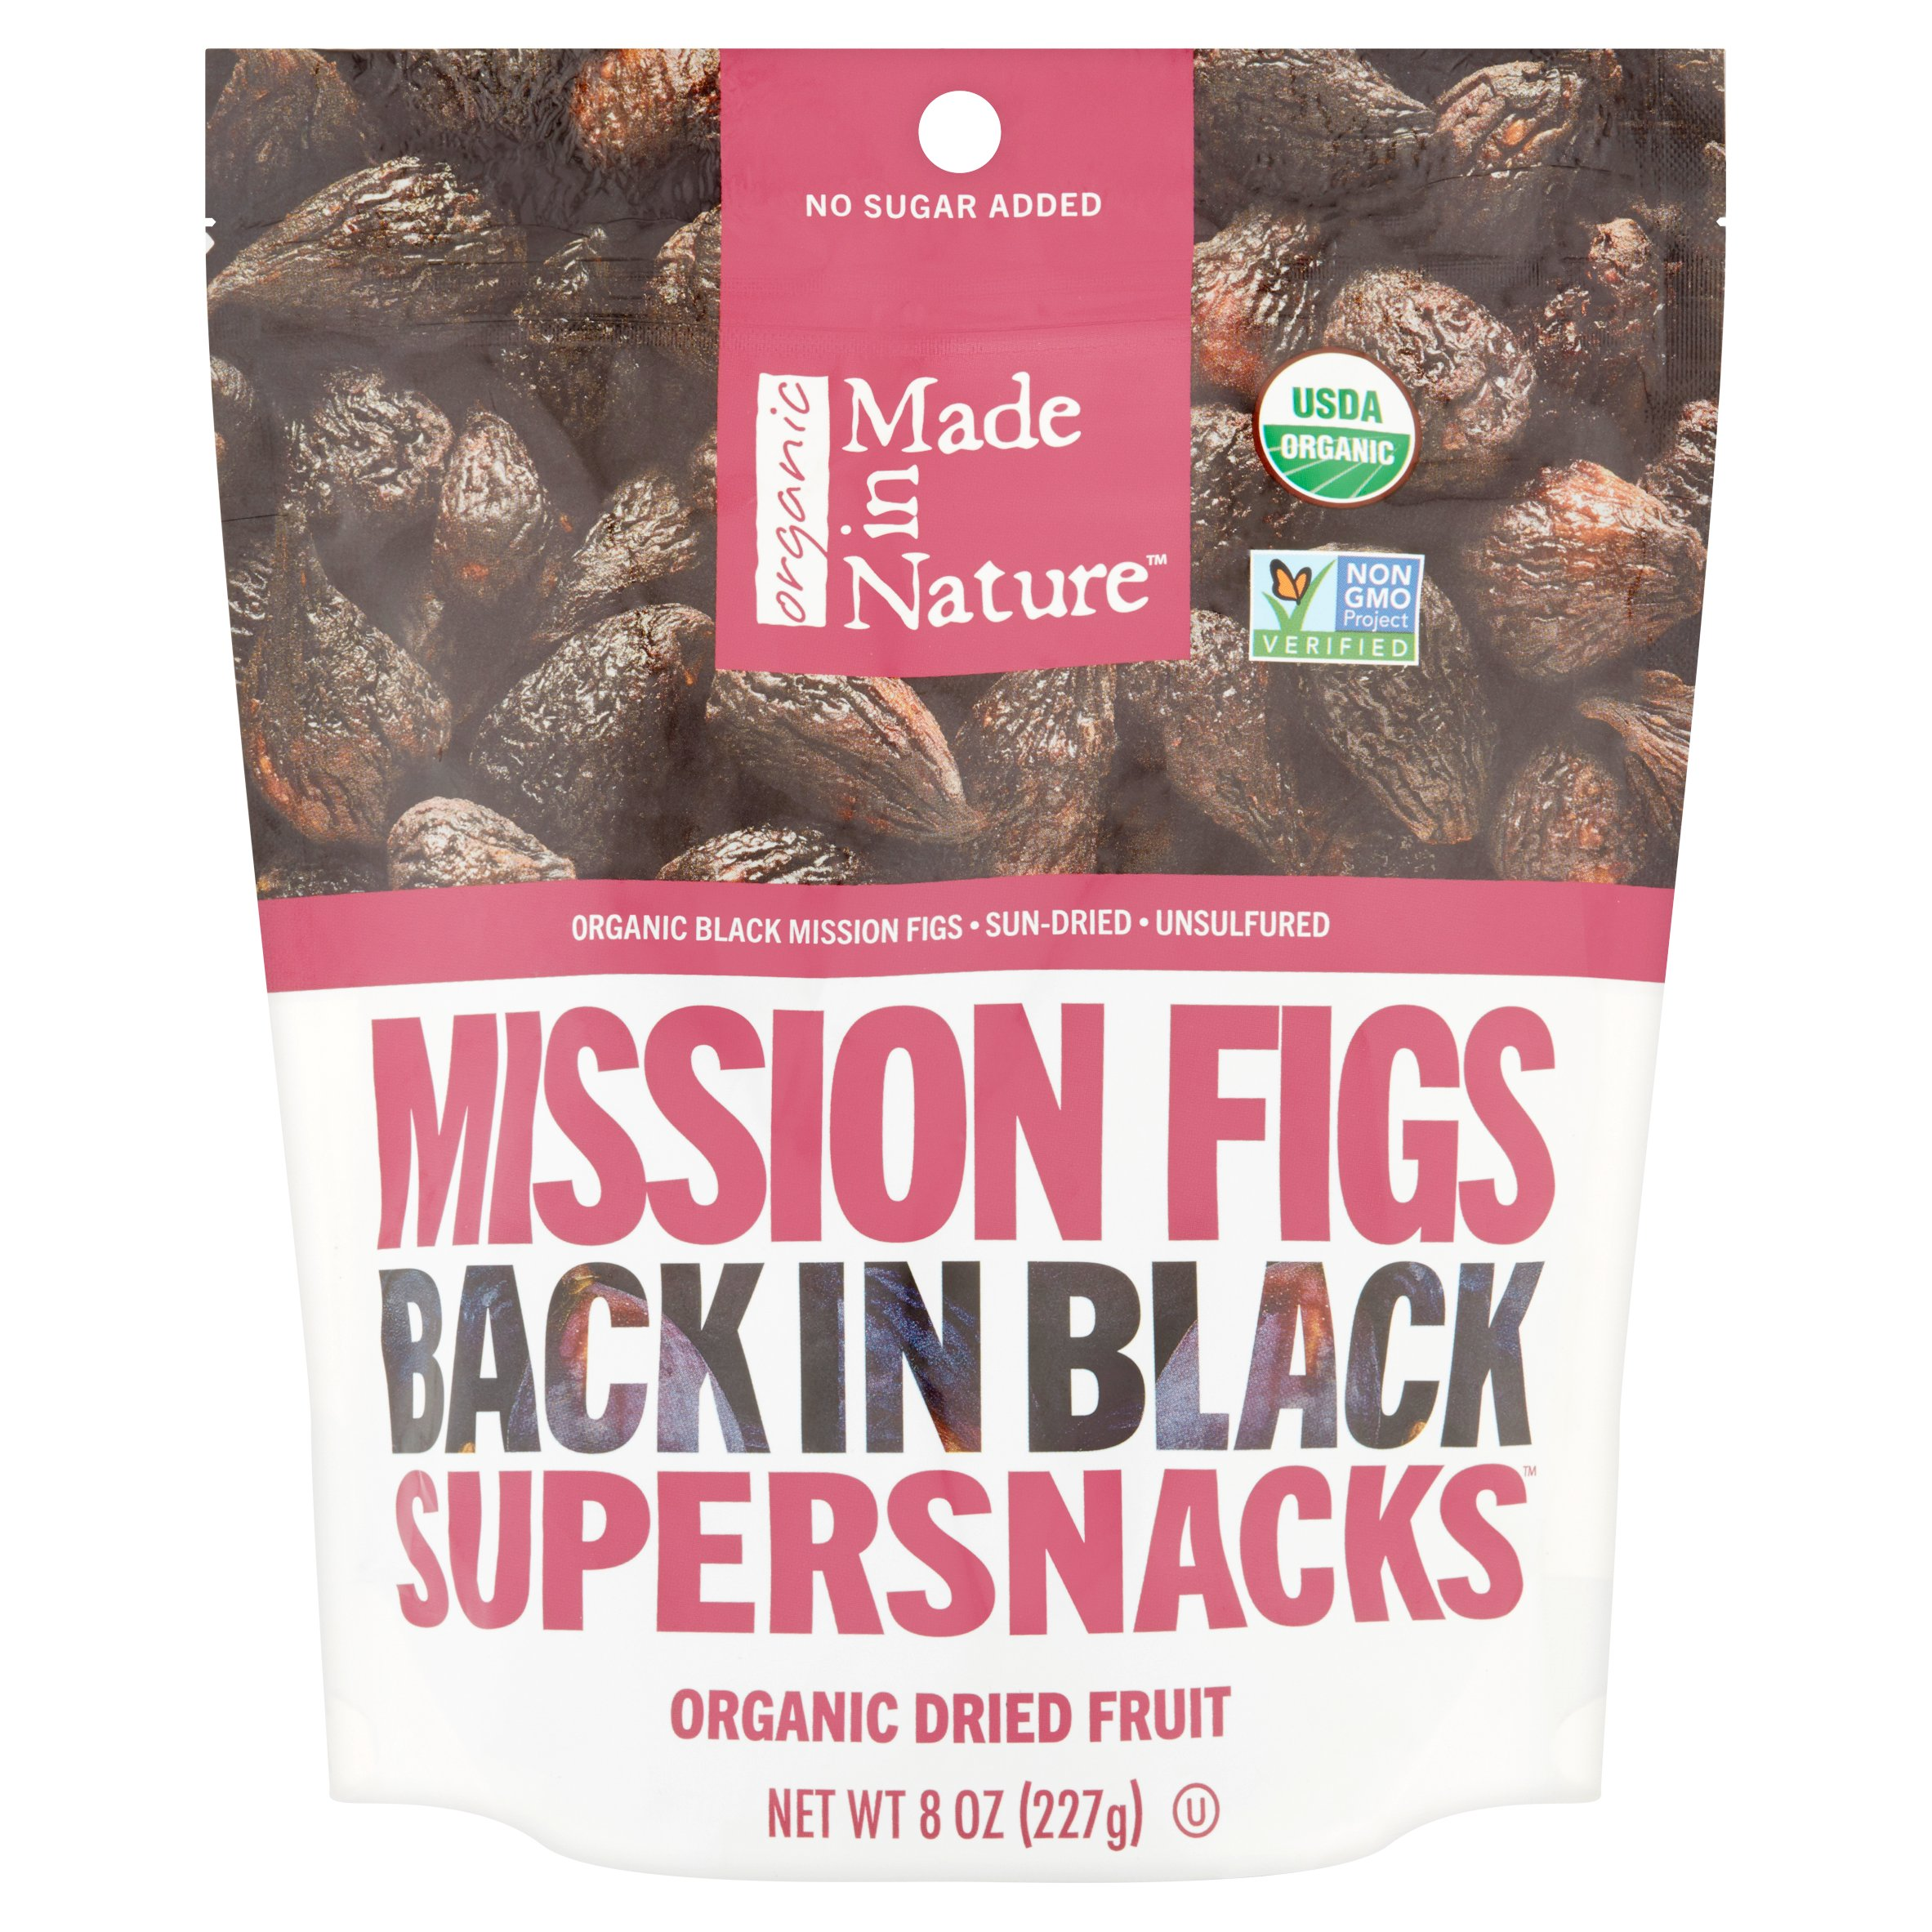 Made in Nature Organic Supersnacks Mission Figs Back in Black Dried Fruit, 8 oz by Made in Nature, LLC.